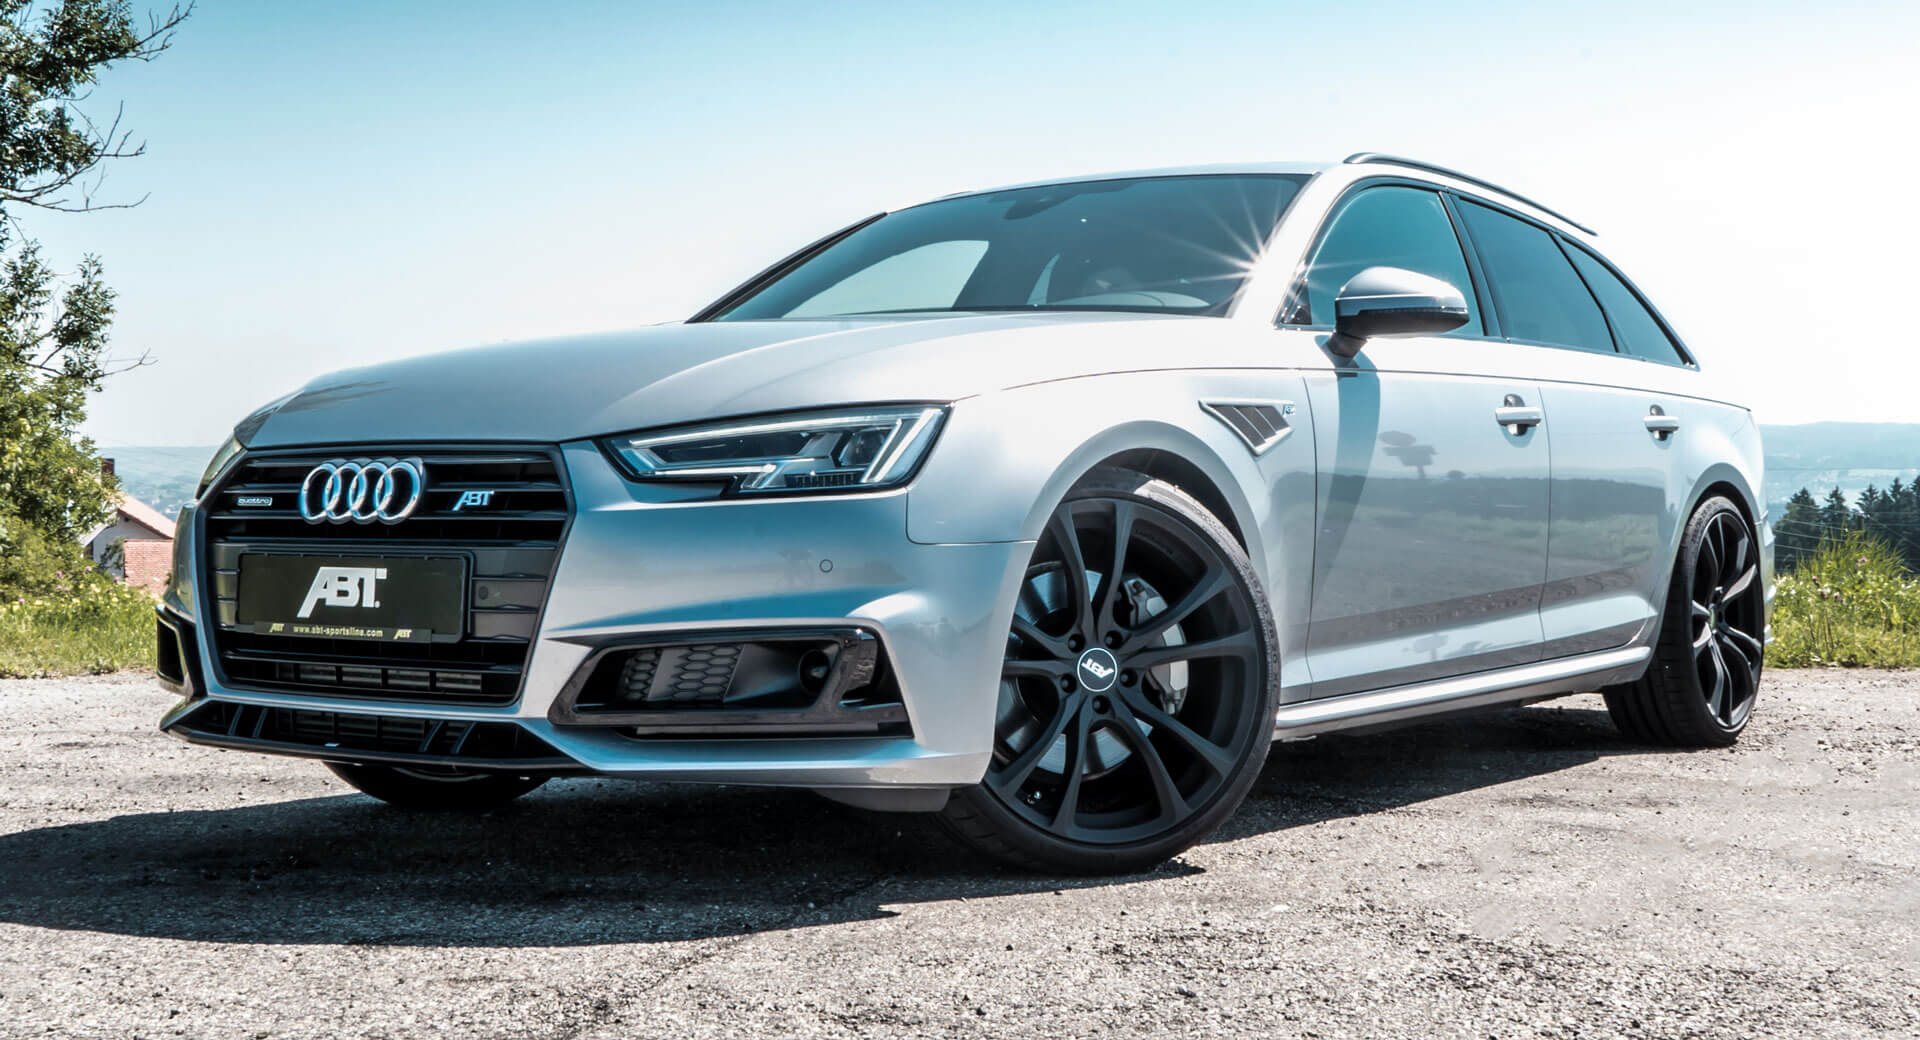 Audi A4 B9 Gets A Complete Tuning Job From Abt Sportsline Carscoops